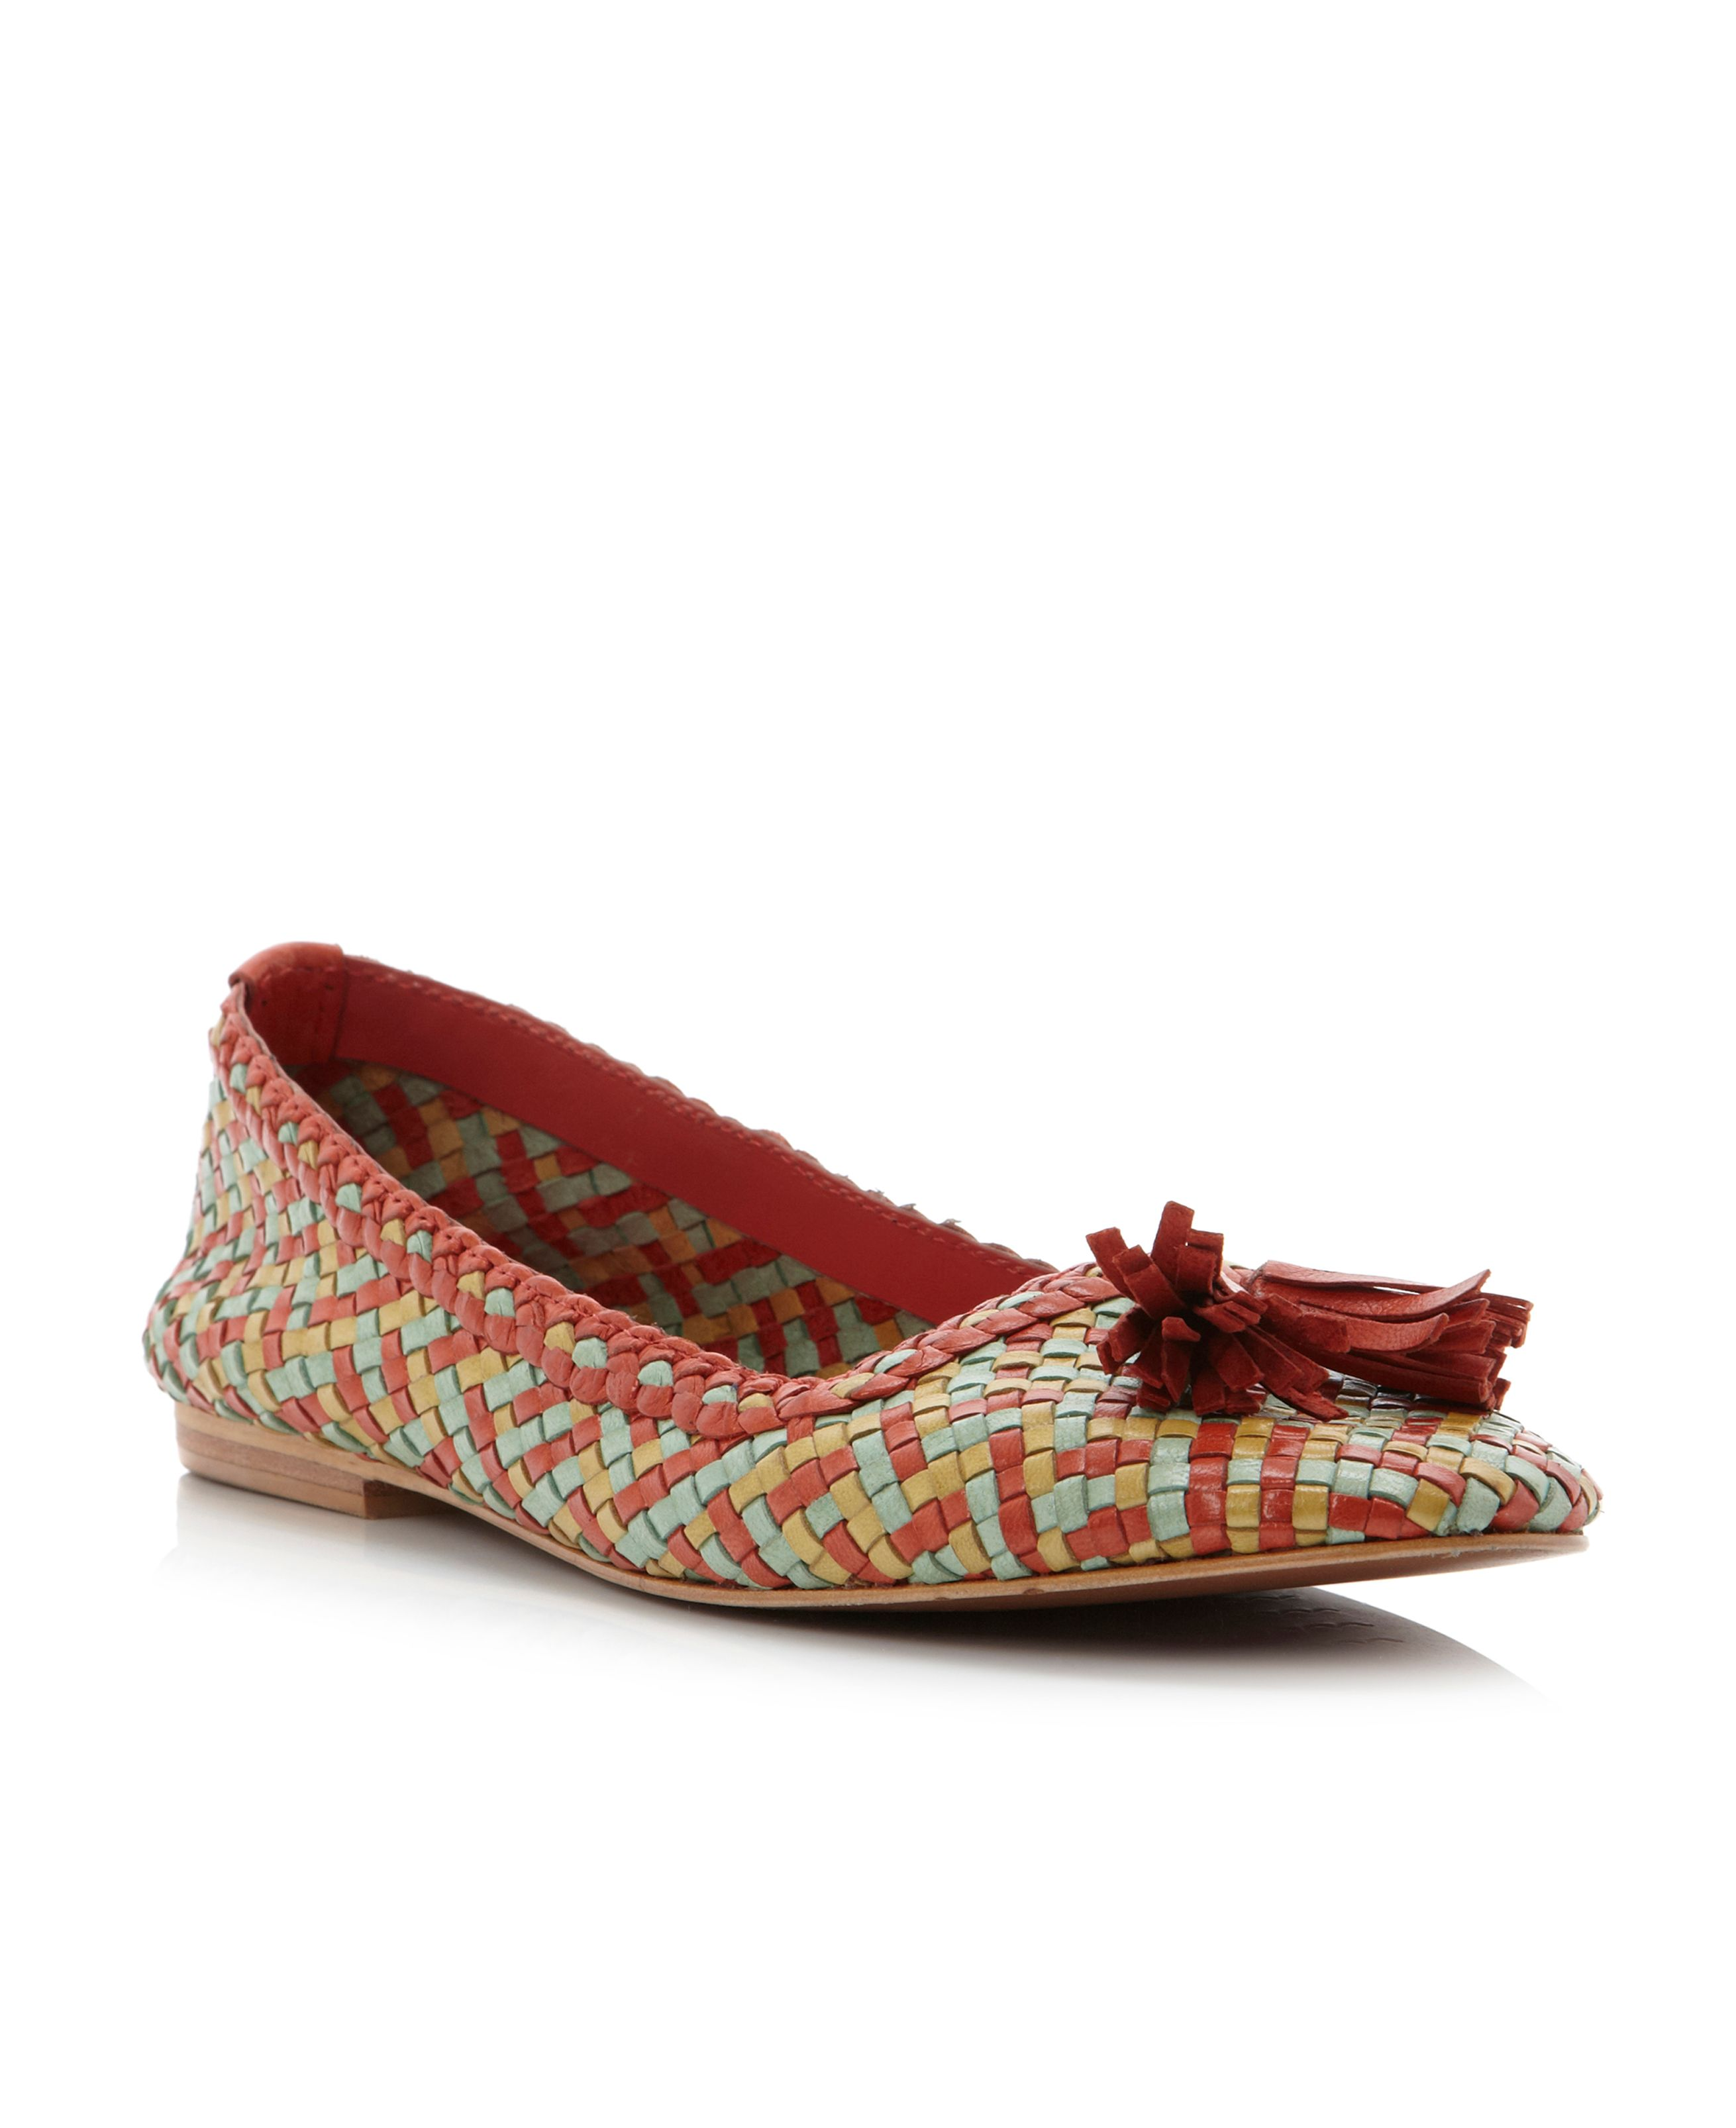 Louisetta woven tassel loafer shoes